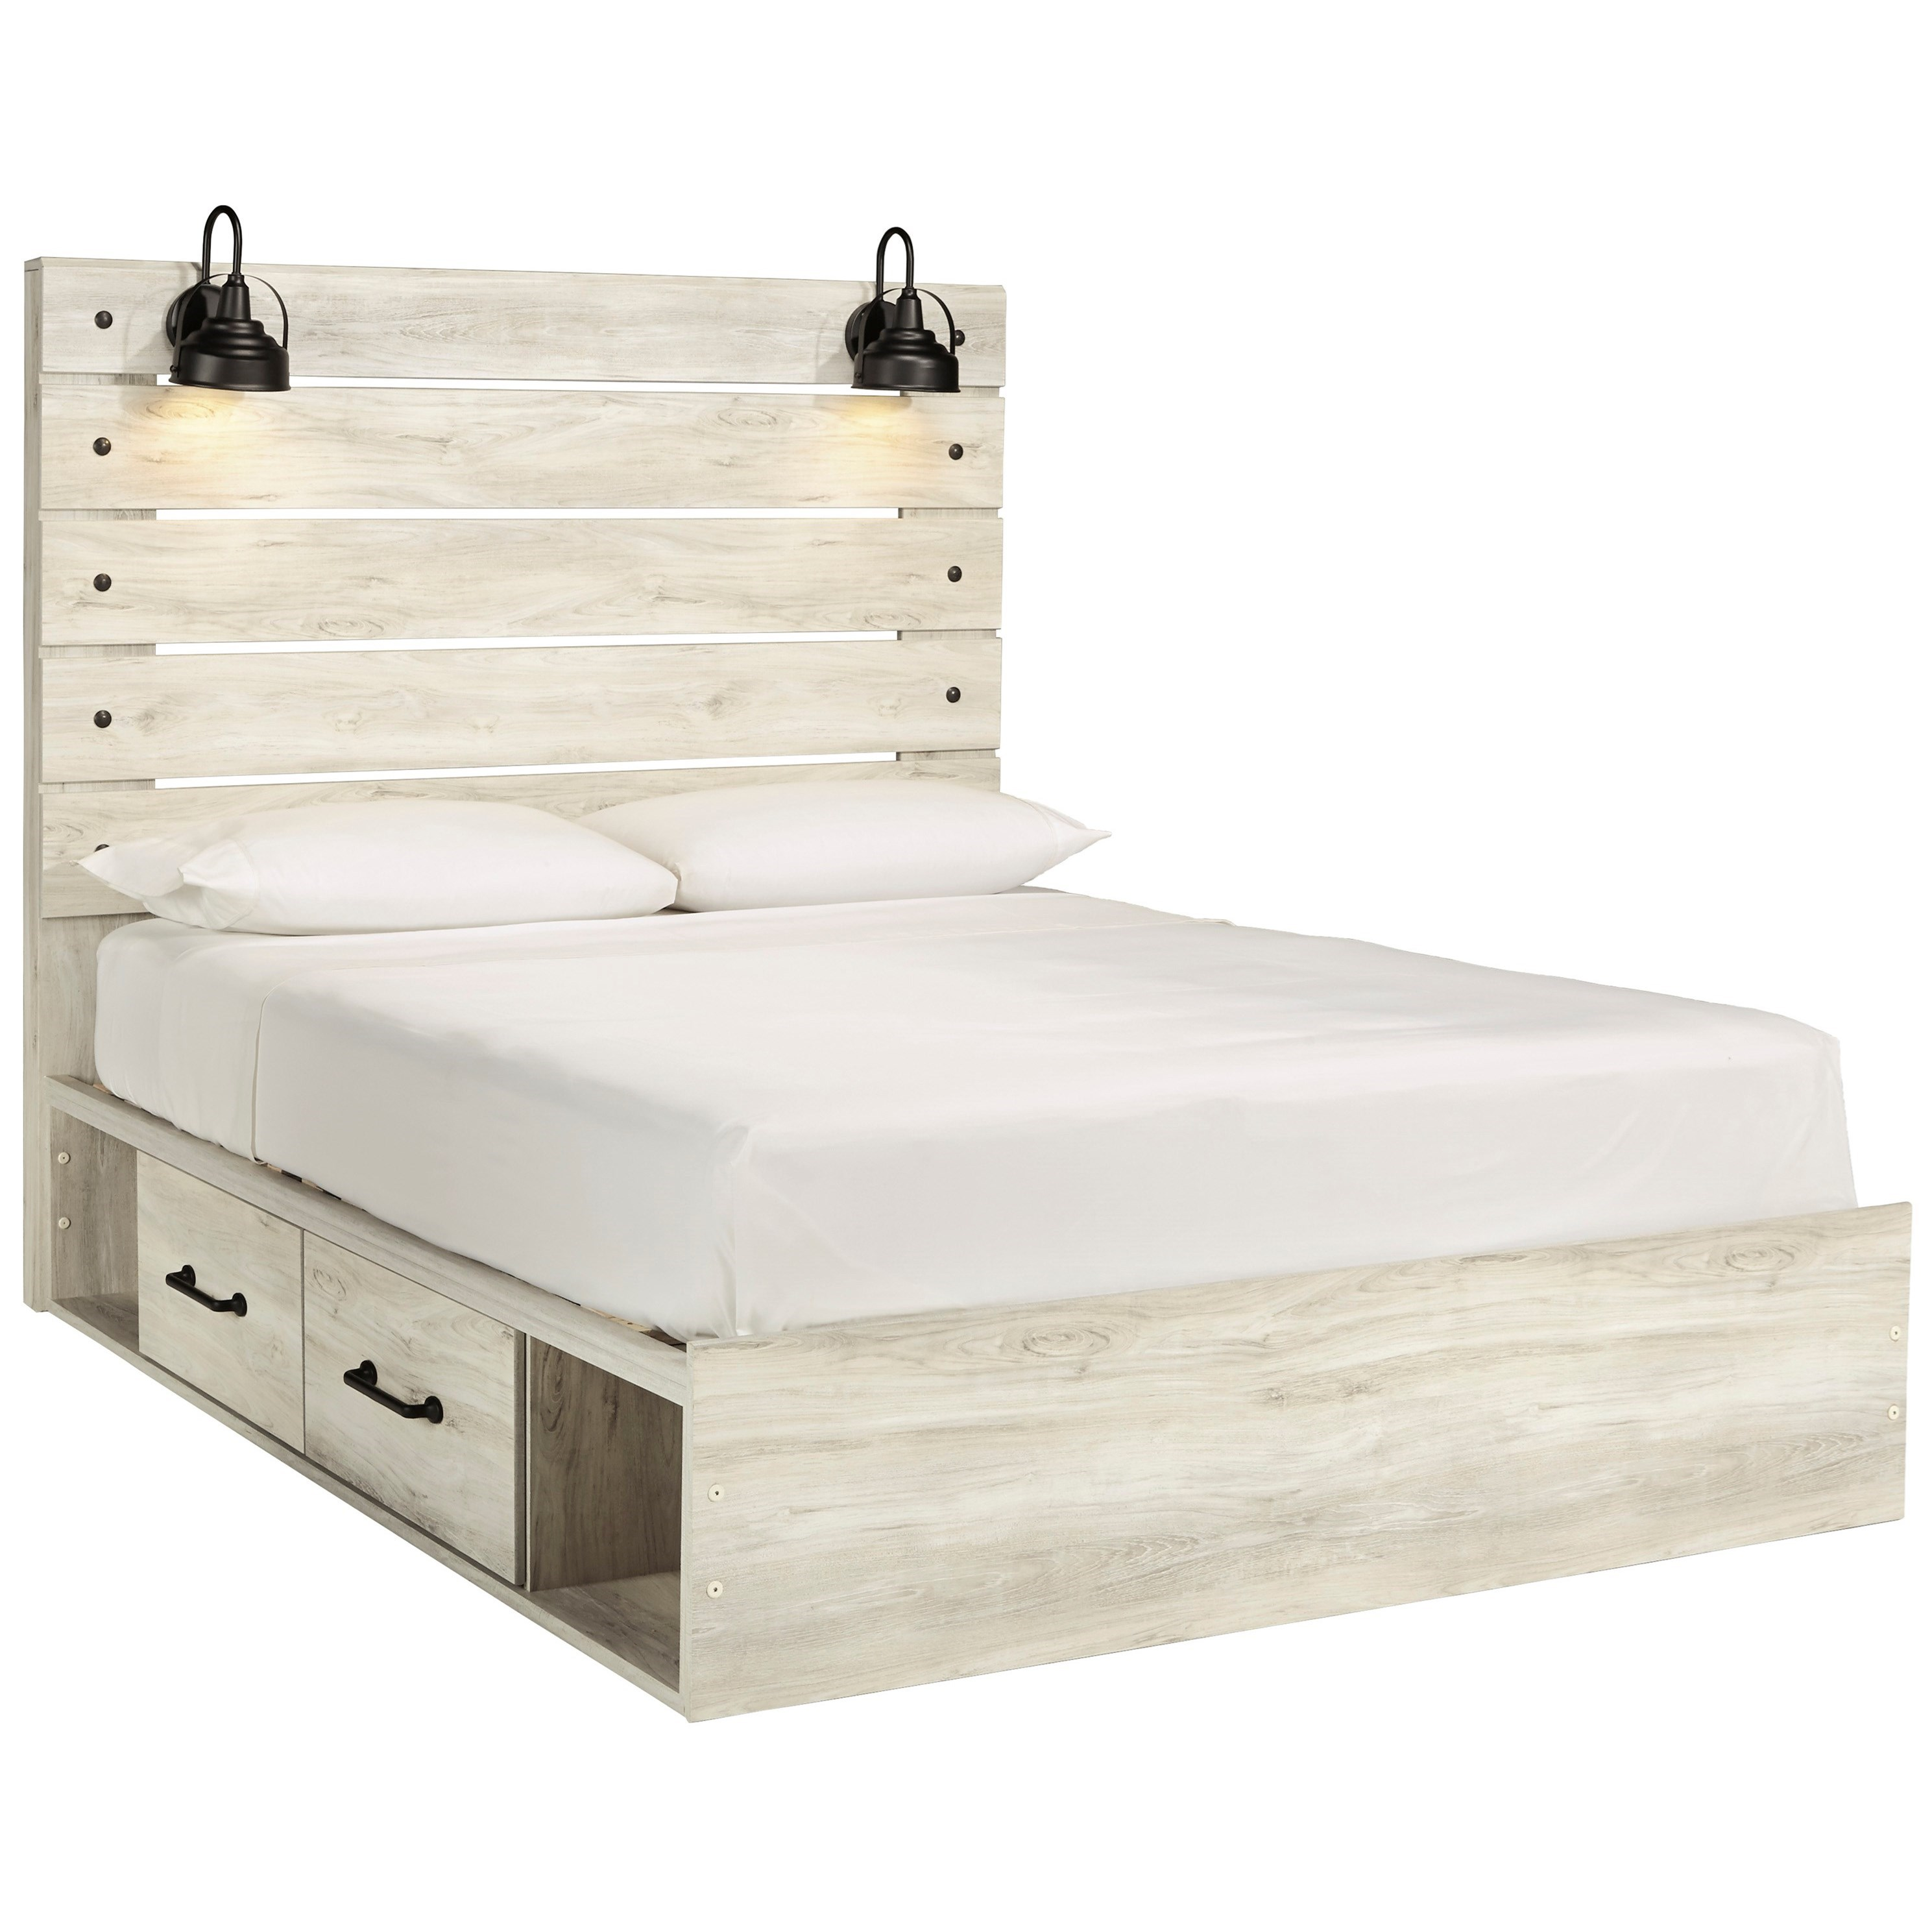 Cambeck Queen Storage Bed with 4 Drawers by Benchcraft at Virginia Furniture Market